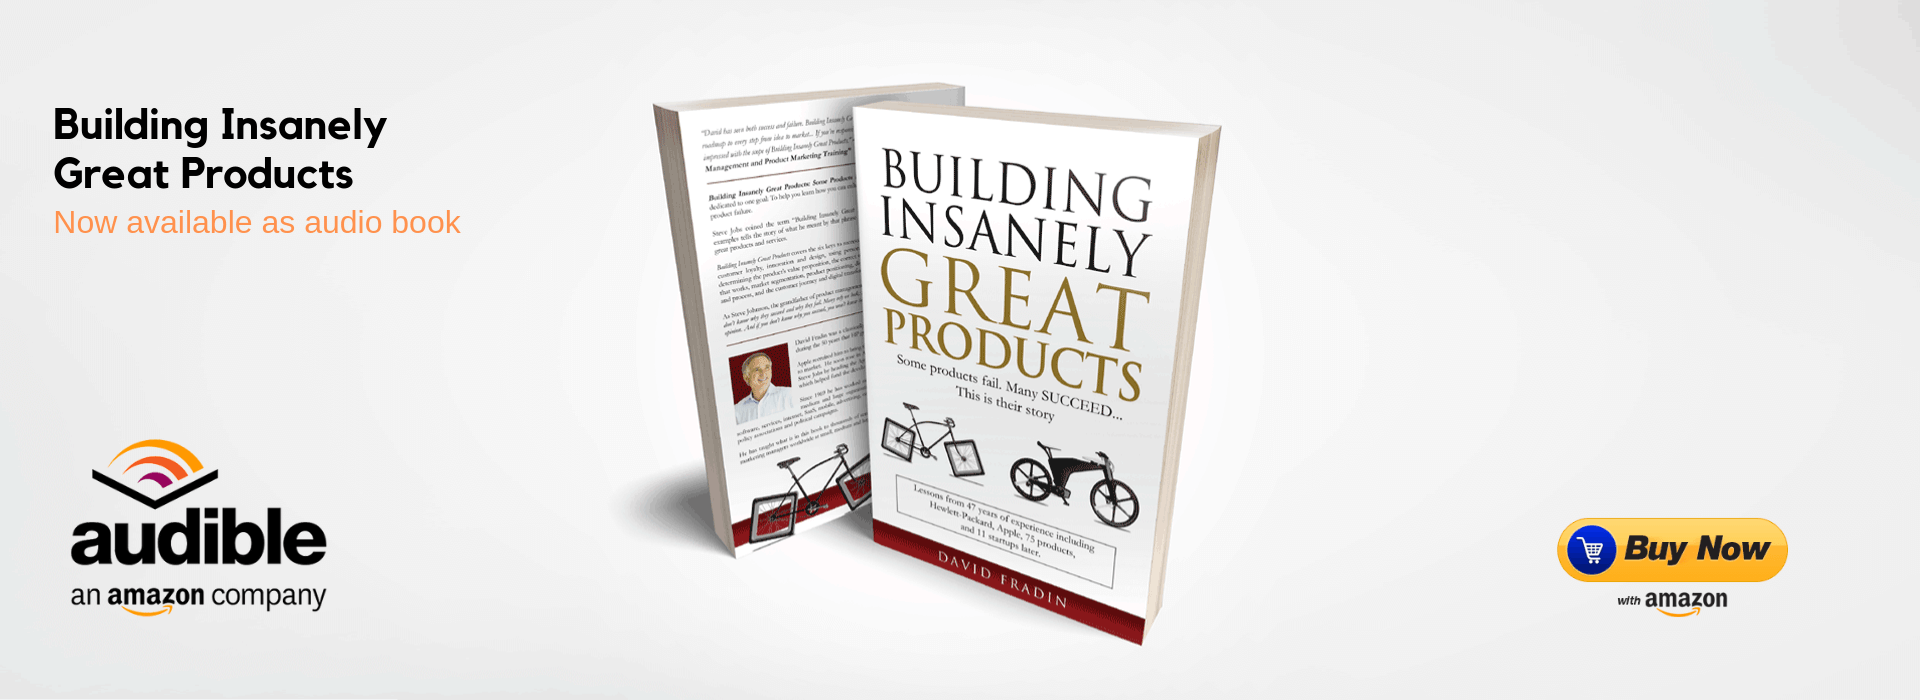 Building Insanely Great Products by David Fradin from Spice Catalyst